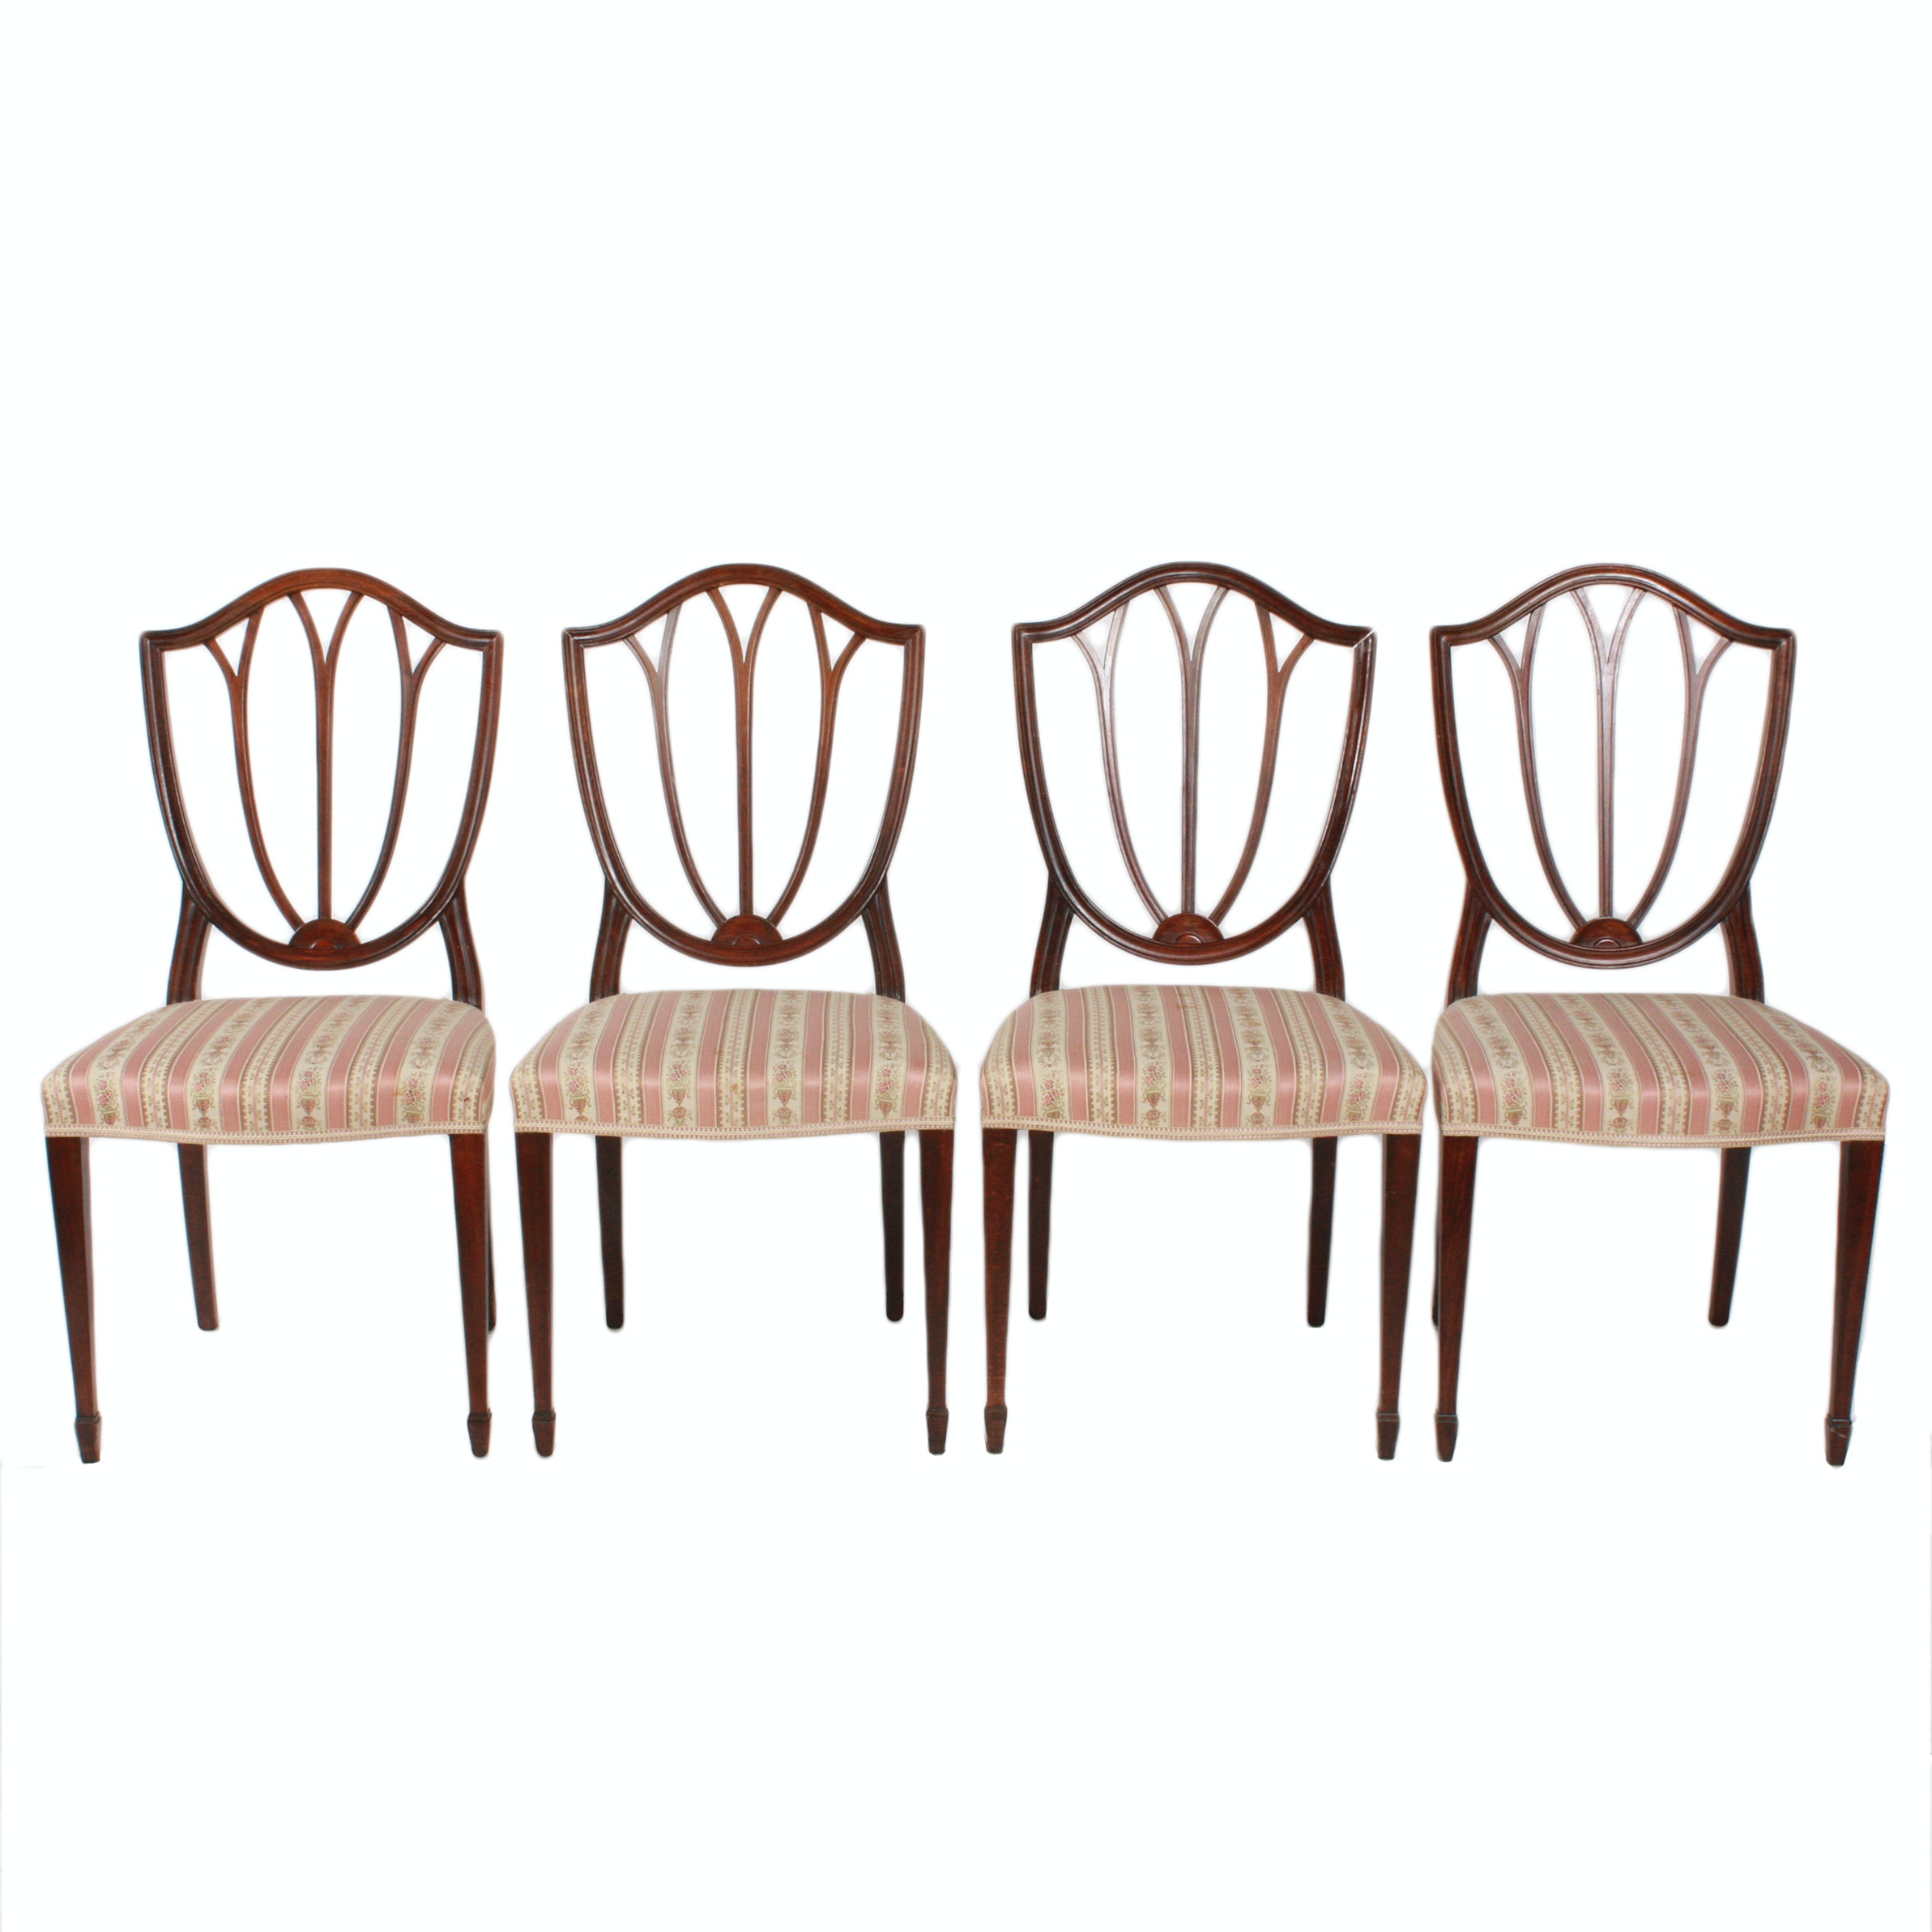 Four Vintage Hepplewhite Style Mahogany Dining Chairs